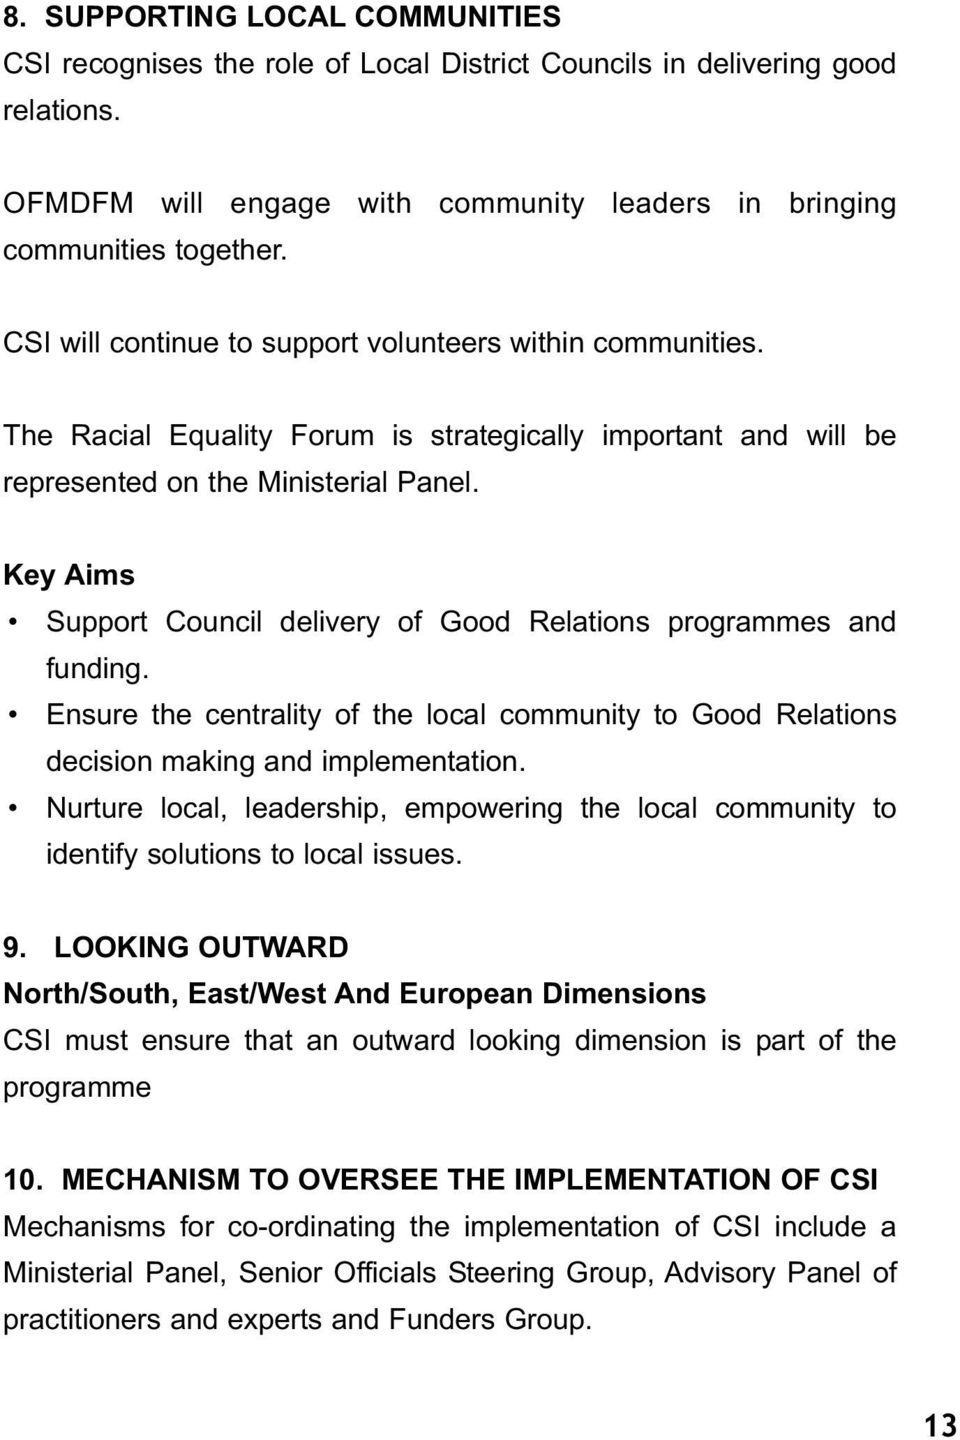 Key Aims Support Council delivery of Good Relations programmes and funding. Ensure the centrality of the local community to Good Relations decision making and implementation.